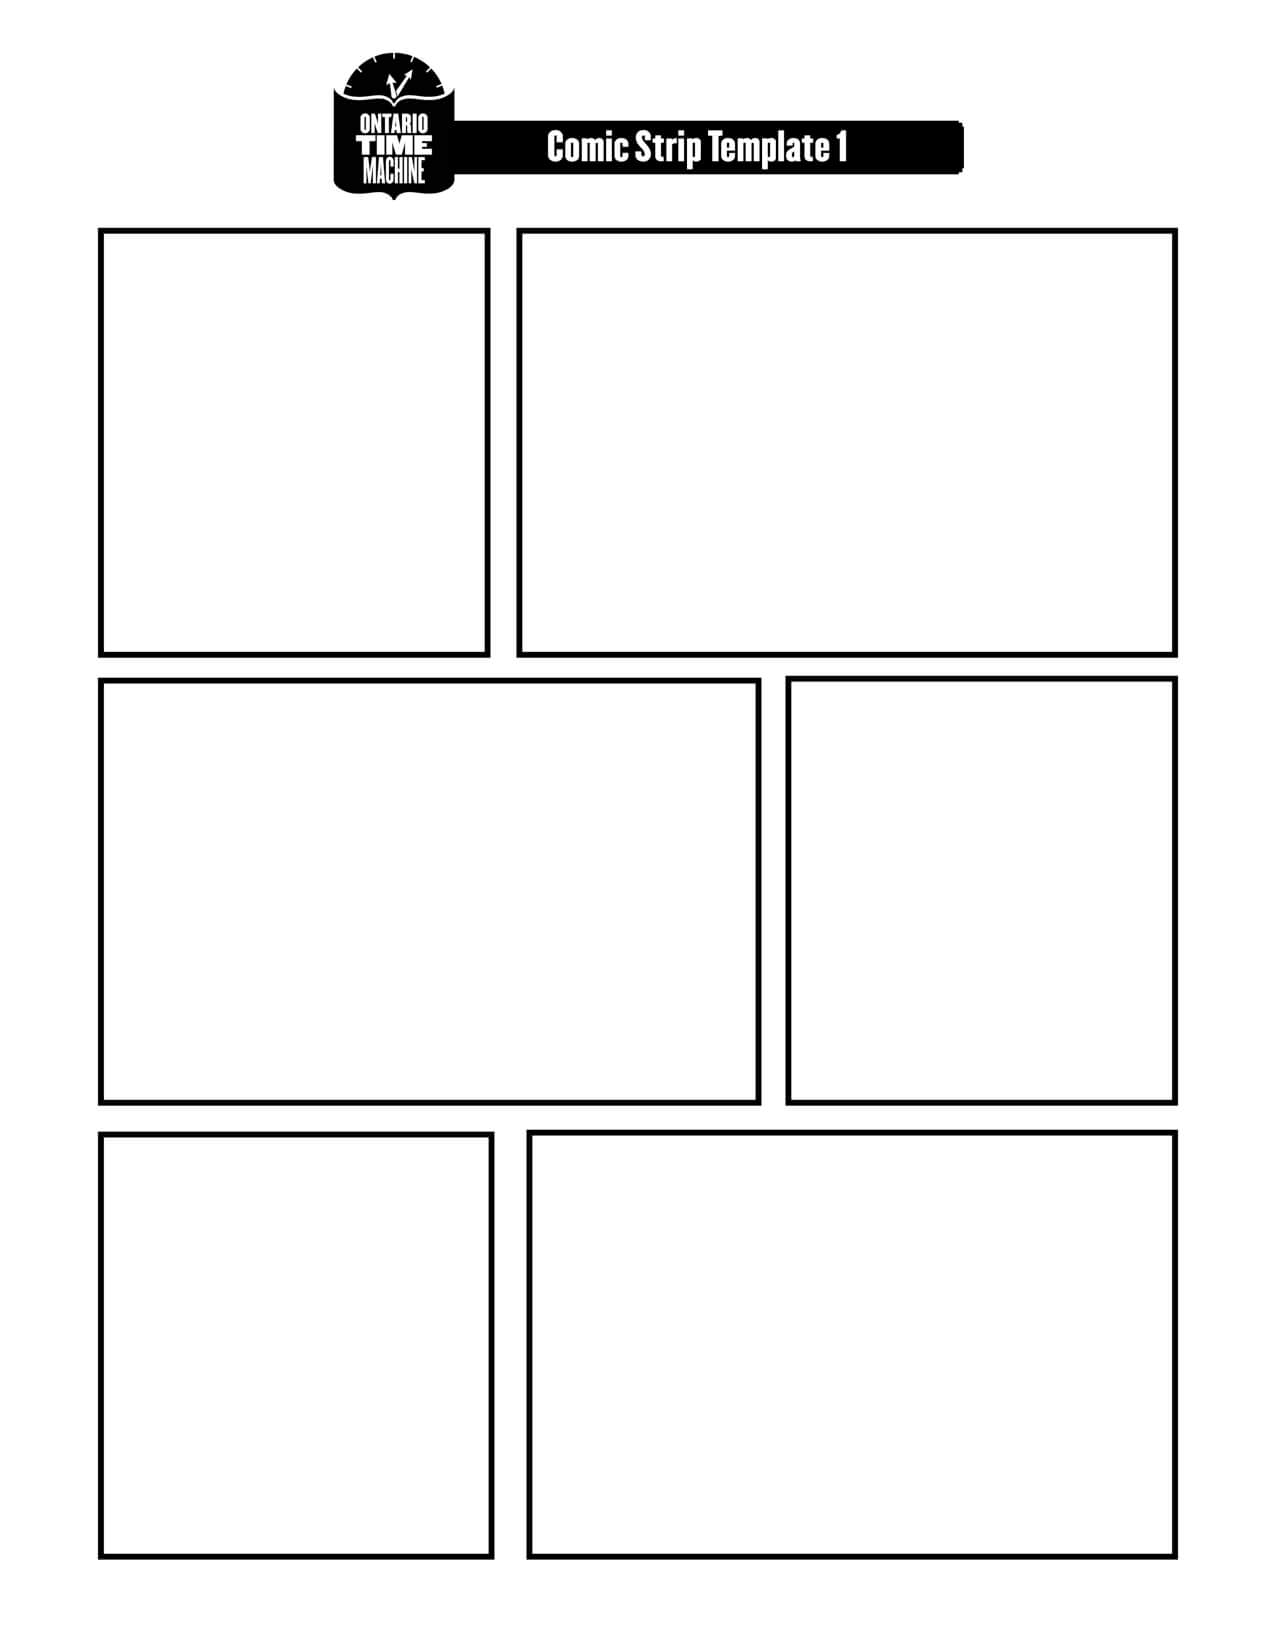 Cartooning Blanks Here Are A Few Ideas For You On Working On Throughout Printable Blank Comic Strip Template For Kids